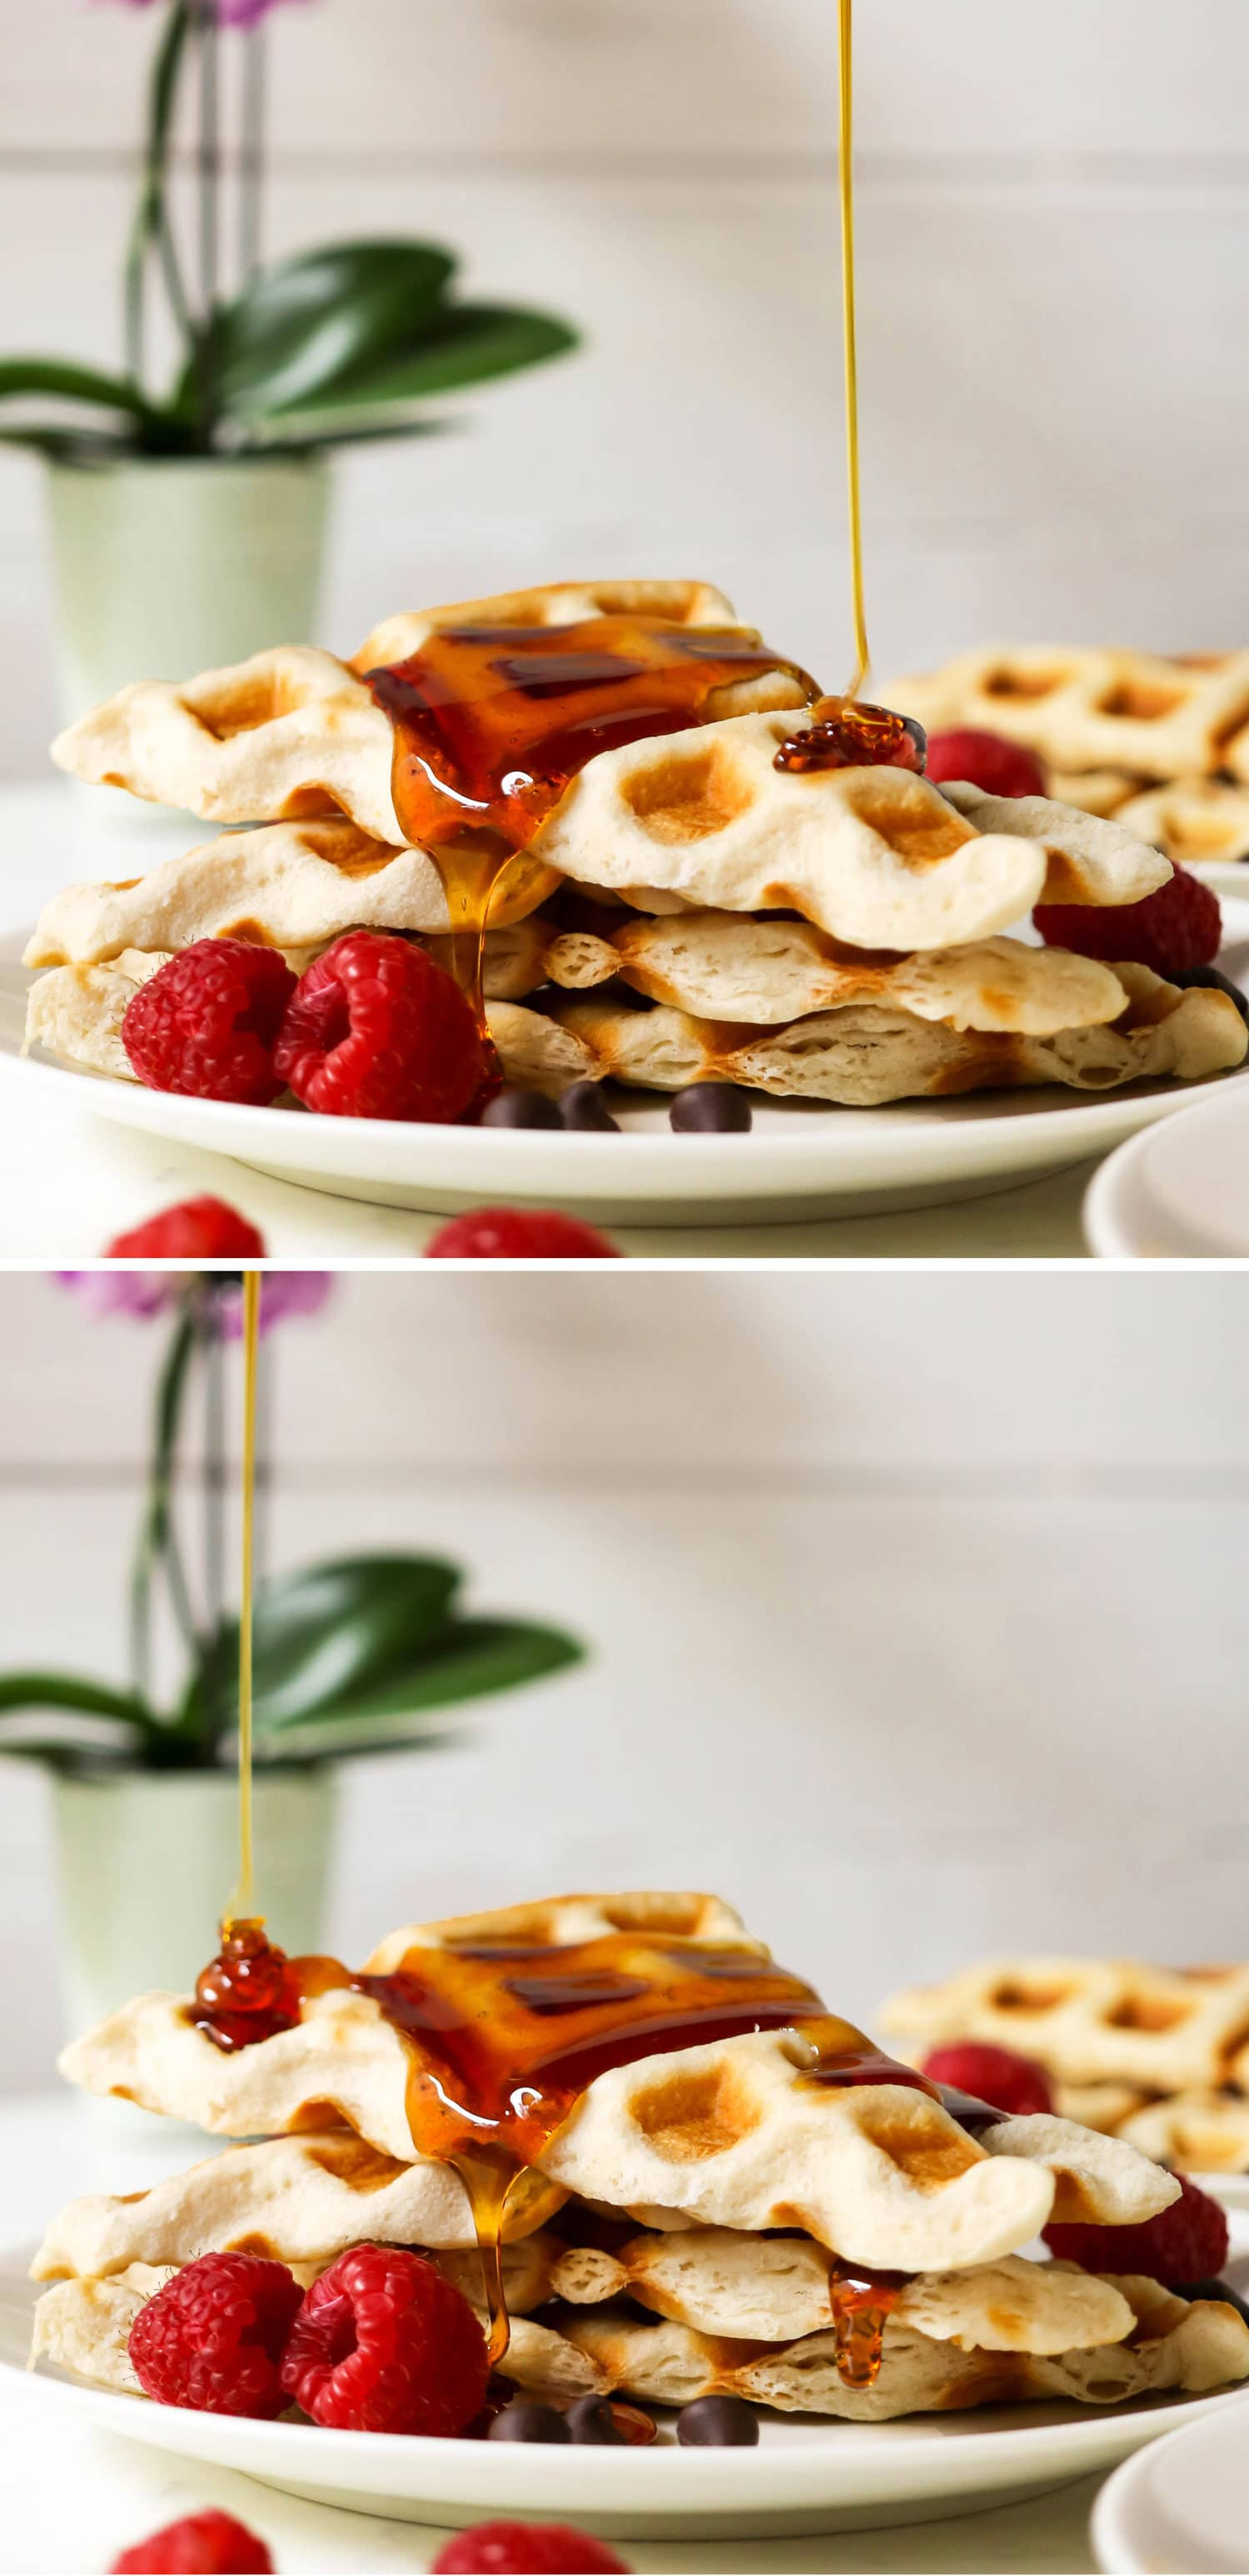 Easy Crescent Waffles - low sugar, low fat, dairy free, and vegan, with just 90 calories each! Healthy dessert recipes at the Desserts With Benefits Blog (www.DessertsWithBenefits.com)